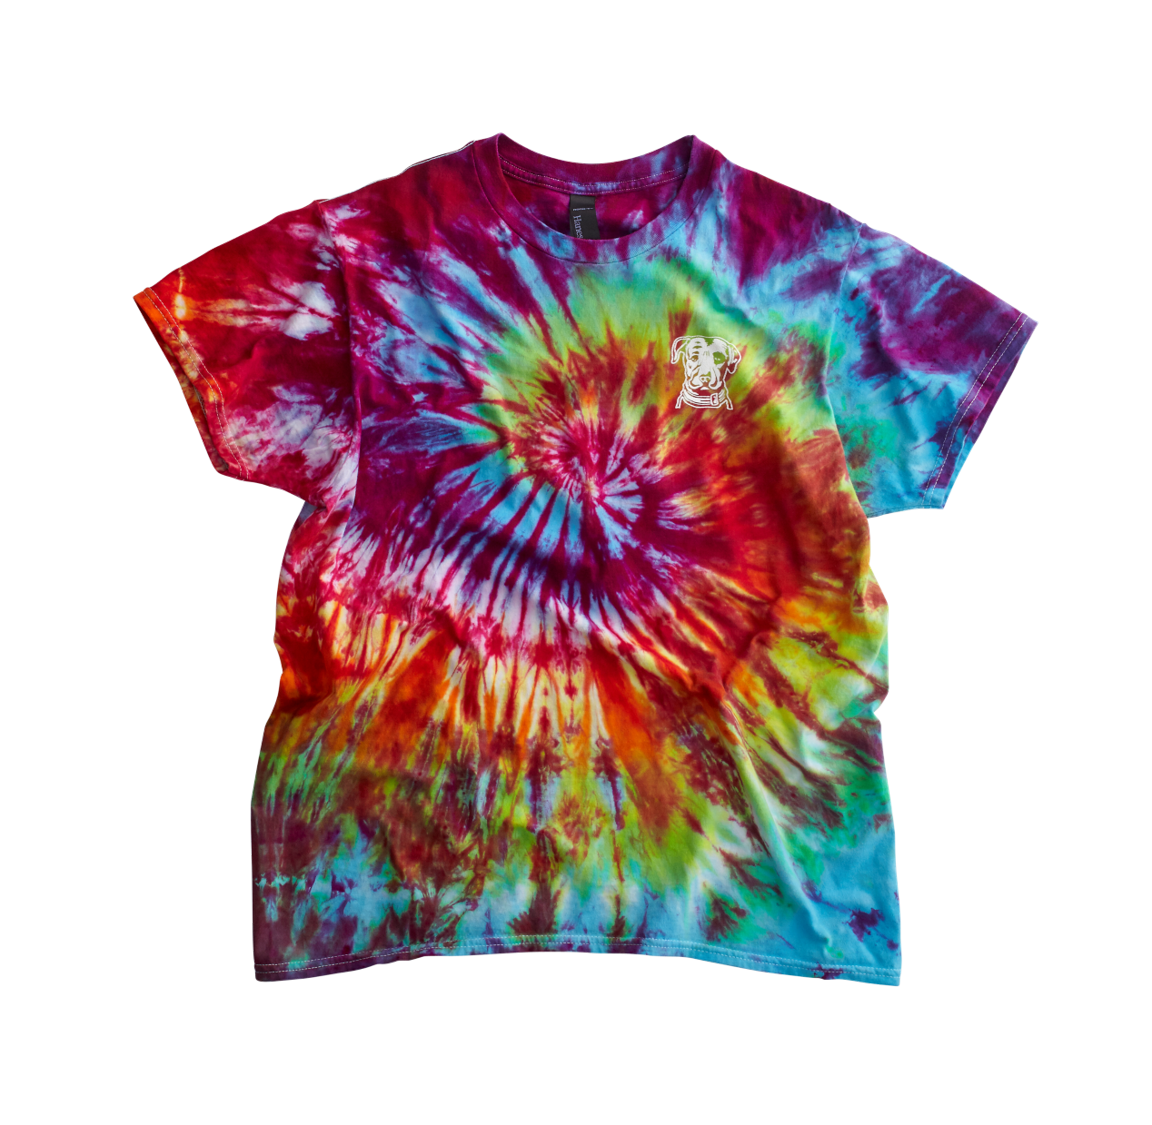 If every color under the rainbow can coexist peacefully on a shirt, then surely all of us can have a seat together at the same bar and enjoy an IPA. We sure as hell can't all fit in the same shirt.   Color: Tie-Dye  NOTE: Colors vary. Hand-dyed, so no two are exactly alike.  Material: 100% cotton